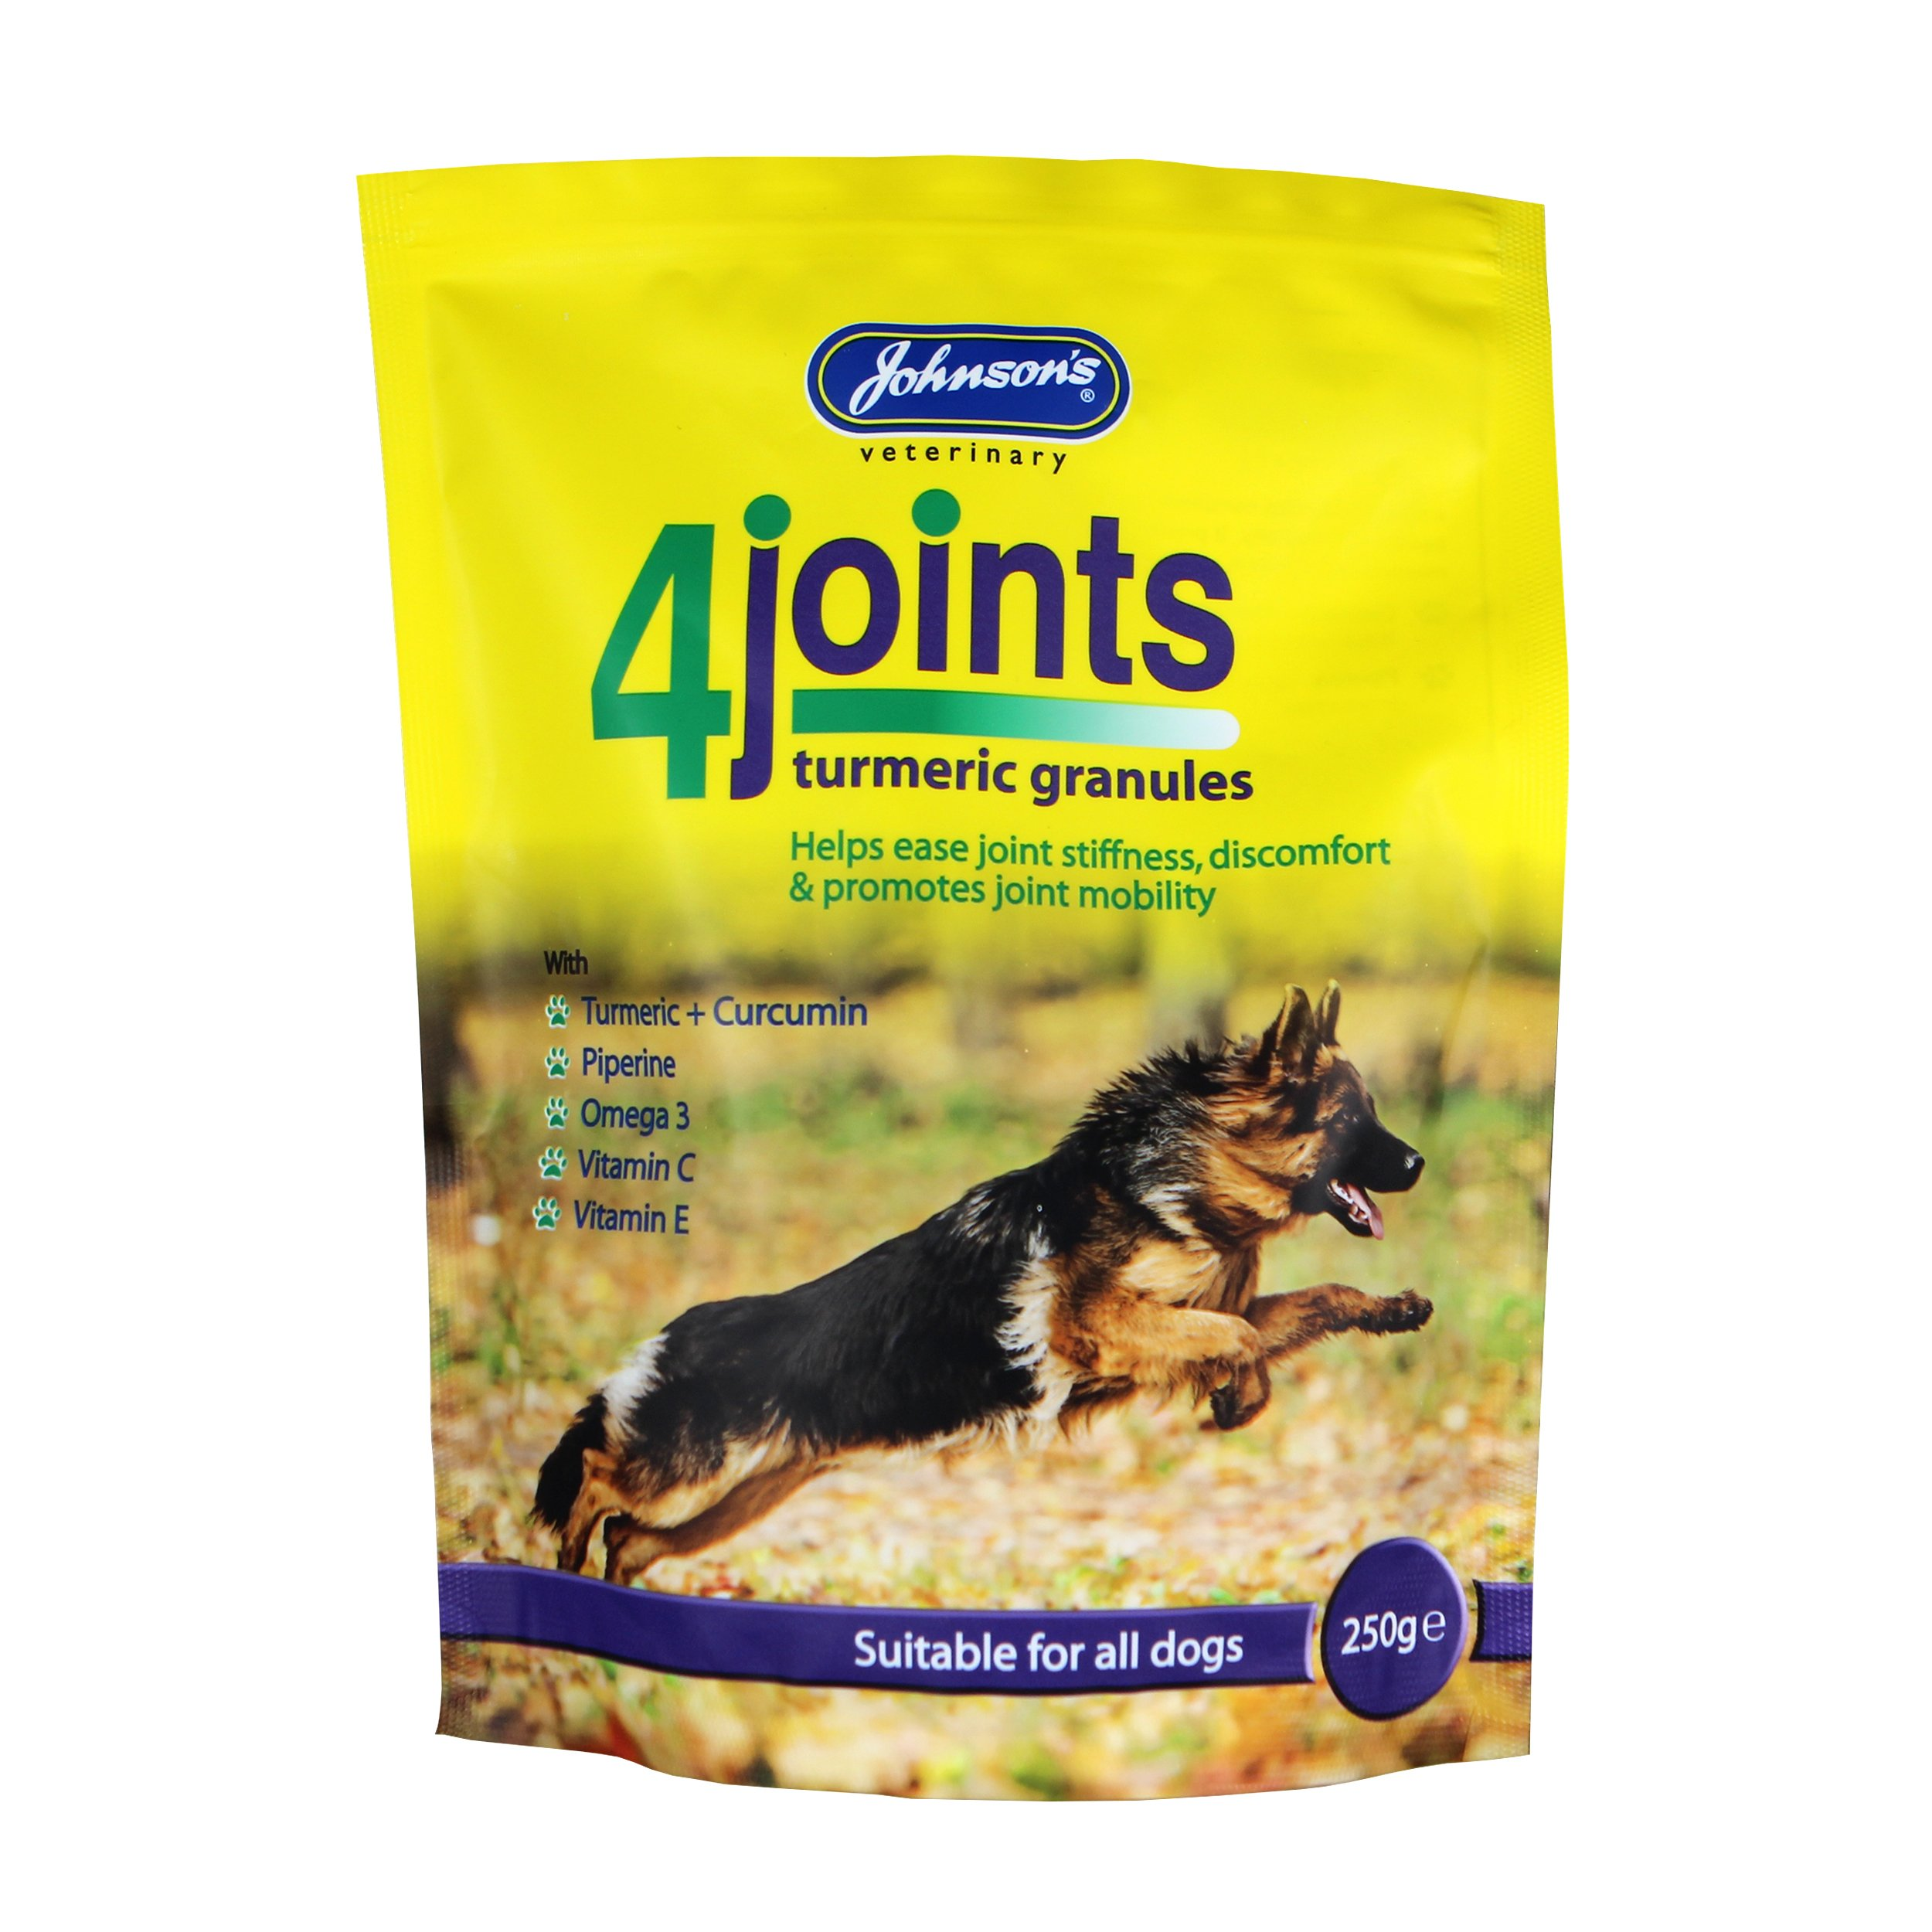 Johnson's 4joints turmeric granules front of pack